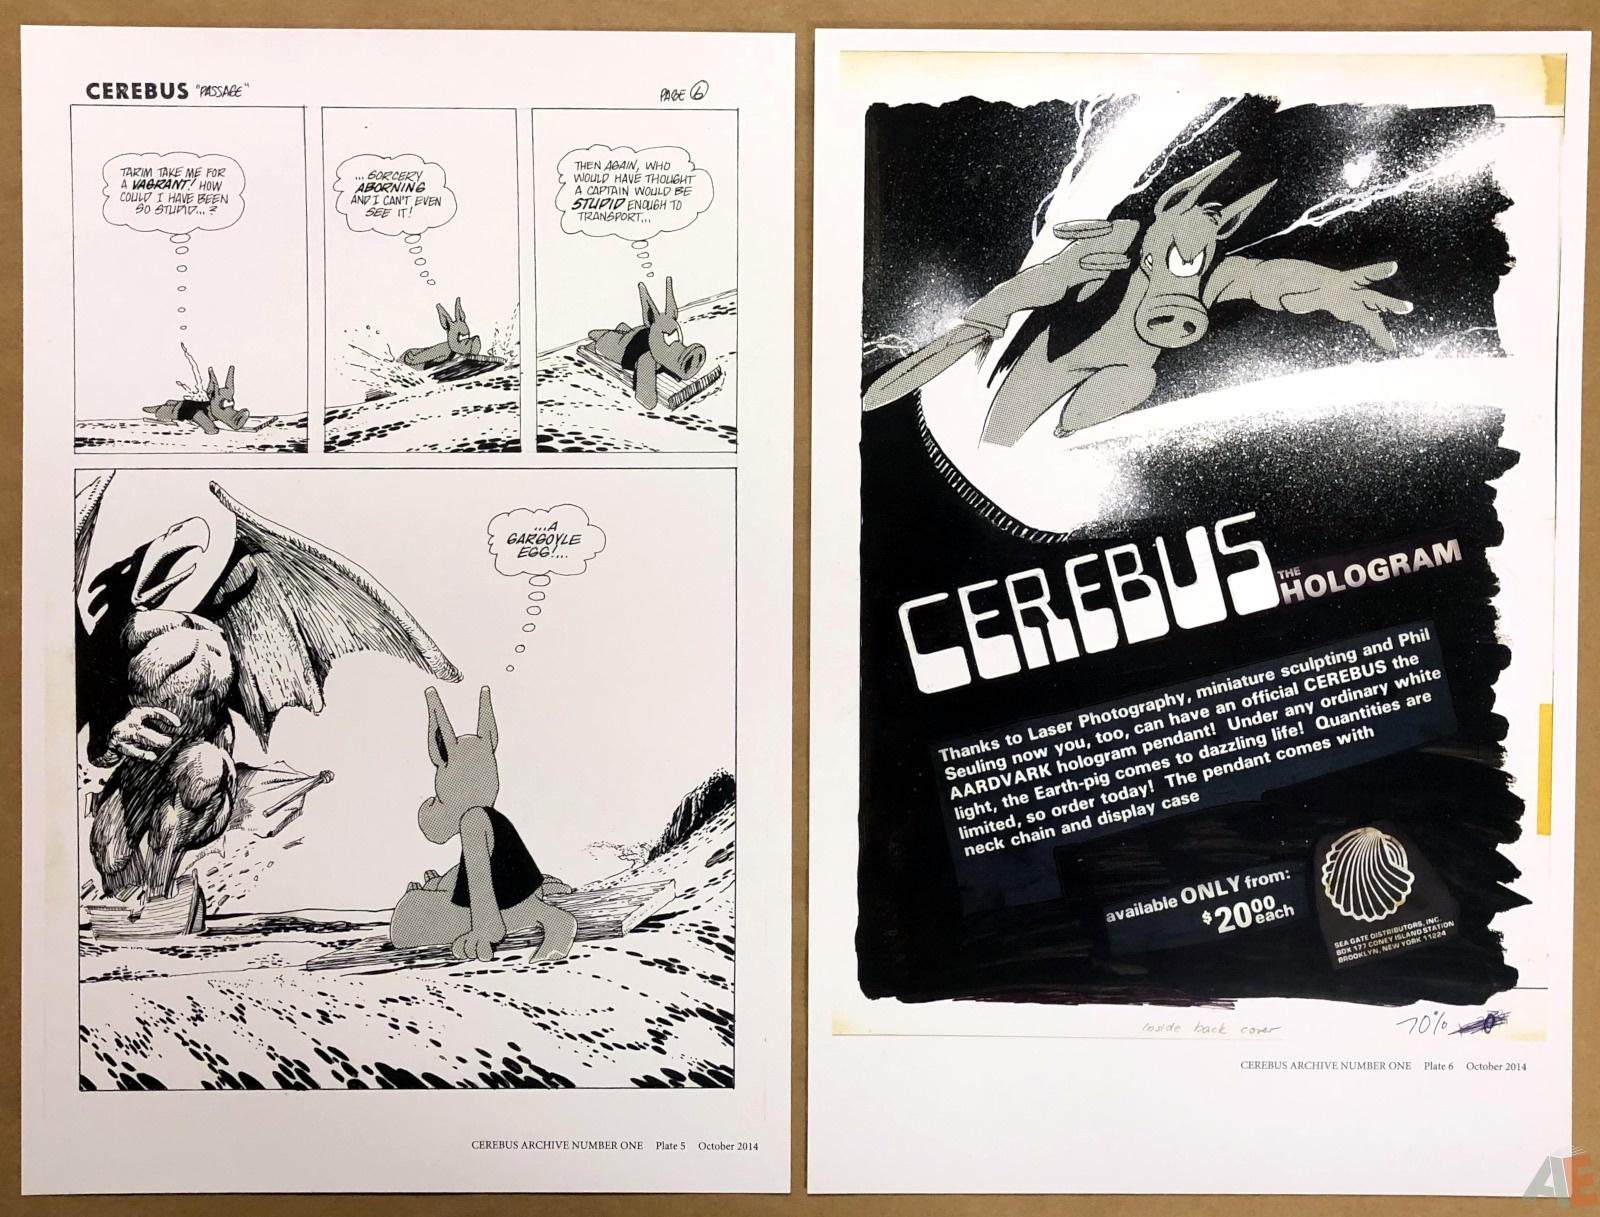 Cerebus Archive Number One 10